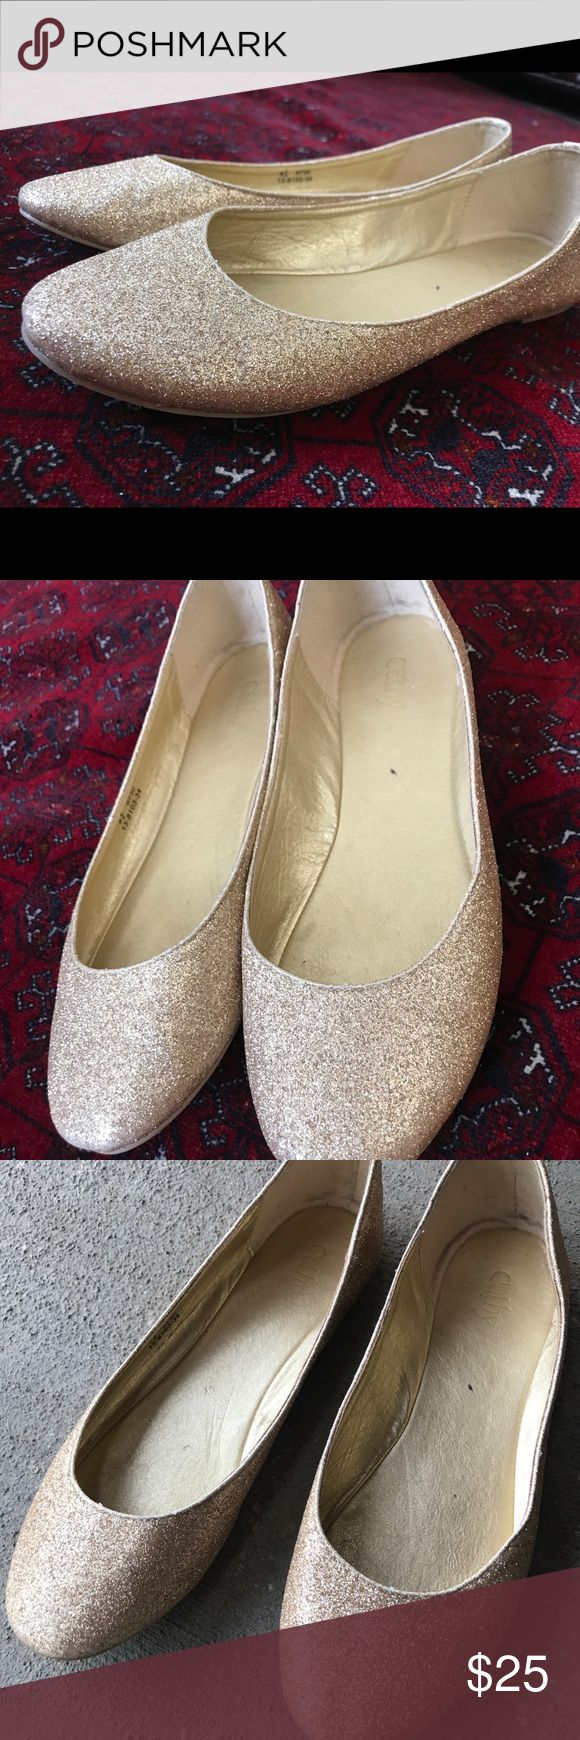 Cathy Gold Shimmer Glitter Flats Have been worn a little bit but honestly look great on! Glitter is very festive and fun!  Feel free to make an offer!  #Cute #fun #flirty #girly #flats #shoes #ootd #hot #sexy #route66 #boho #bohemian #bohoshoes #hippie #tribal #aztec #cute #freespirit #native #nativeamerican #hip #swag #rock #roll #bands #edgy #hot #sexy #fire #aldo #sale #clearance #holidays #xmas #Christmas #gift #glitter #glitterflats #ootd #shoes #aldo #festive #fun Cathy Jean Shoes…